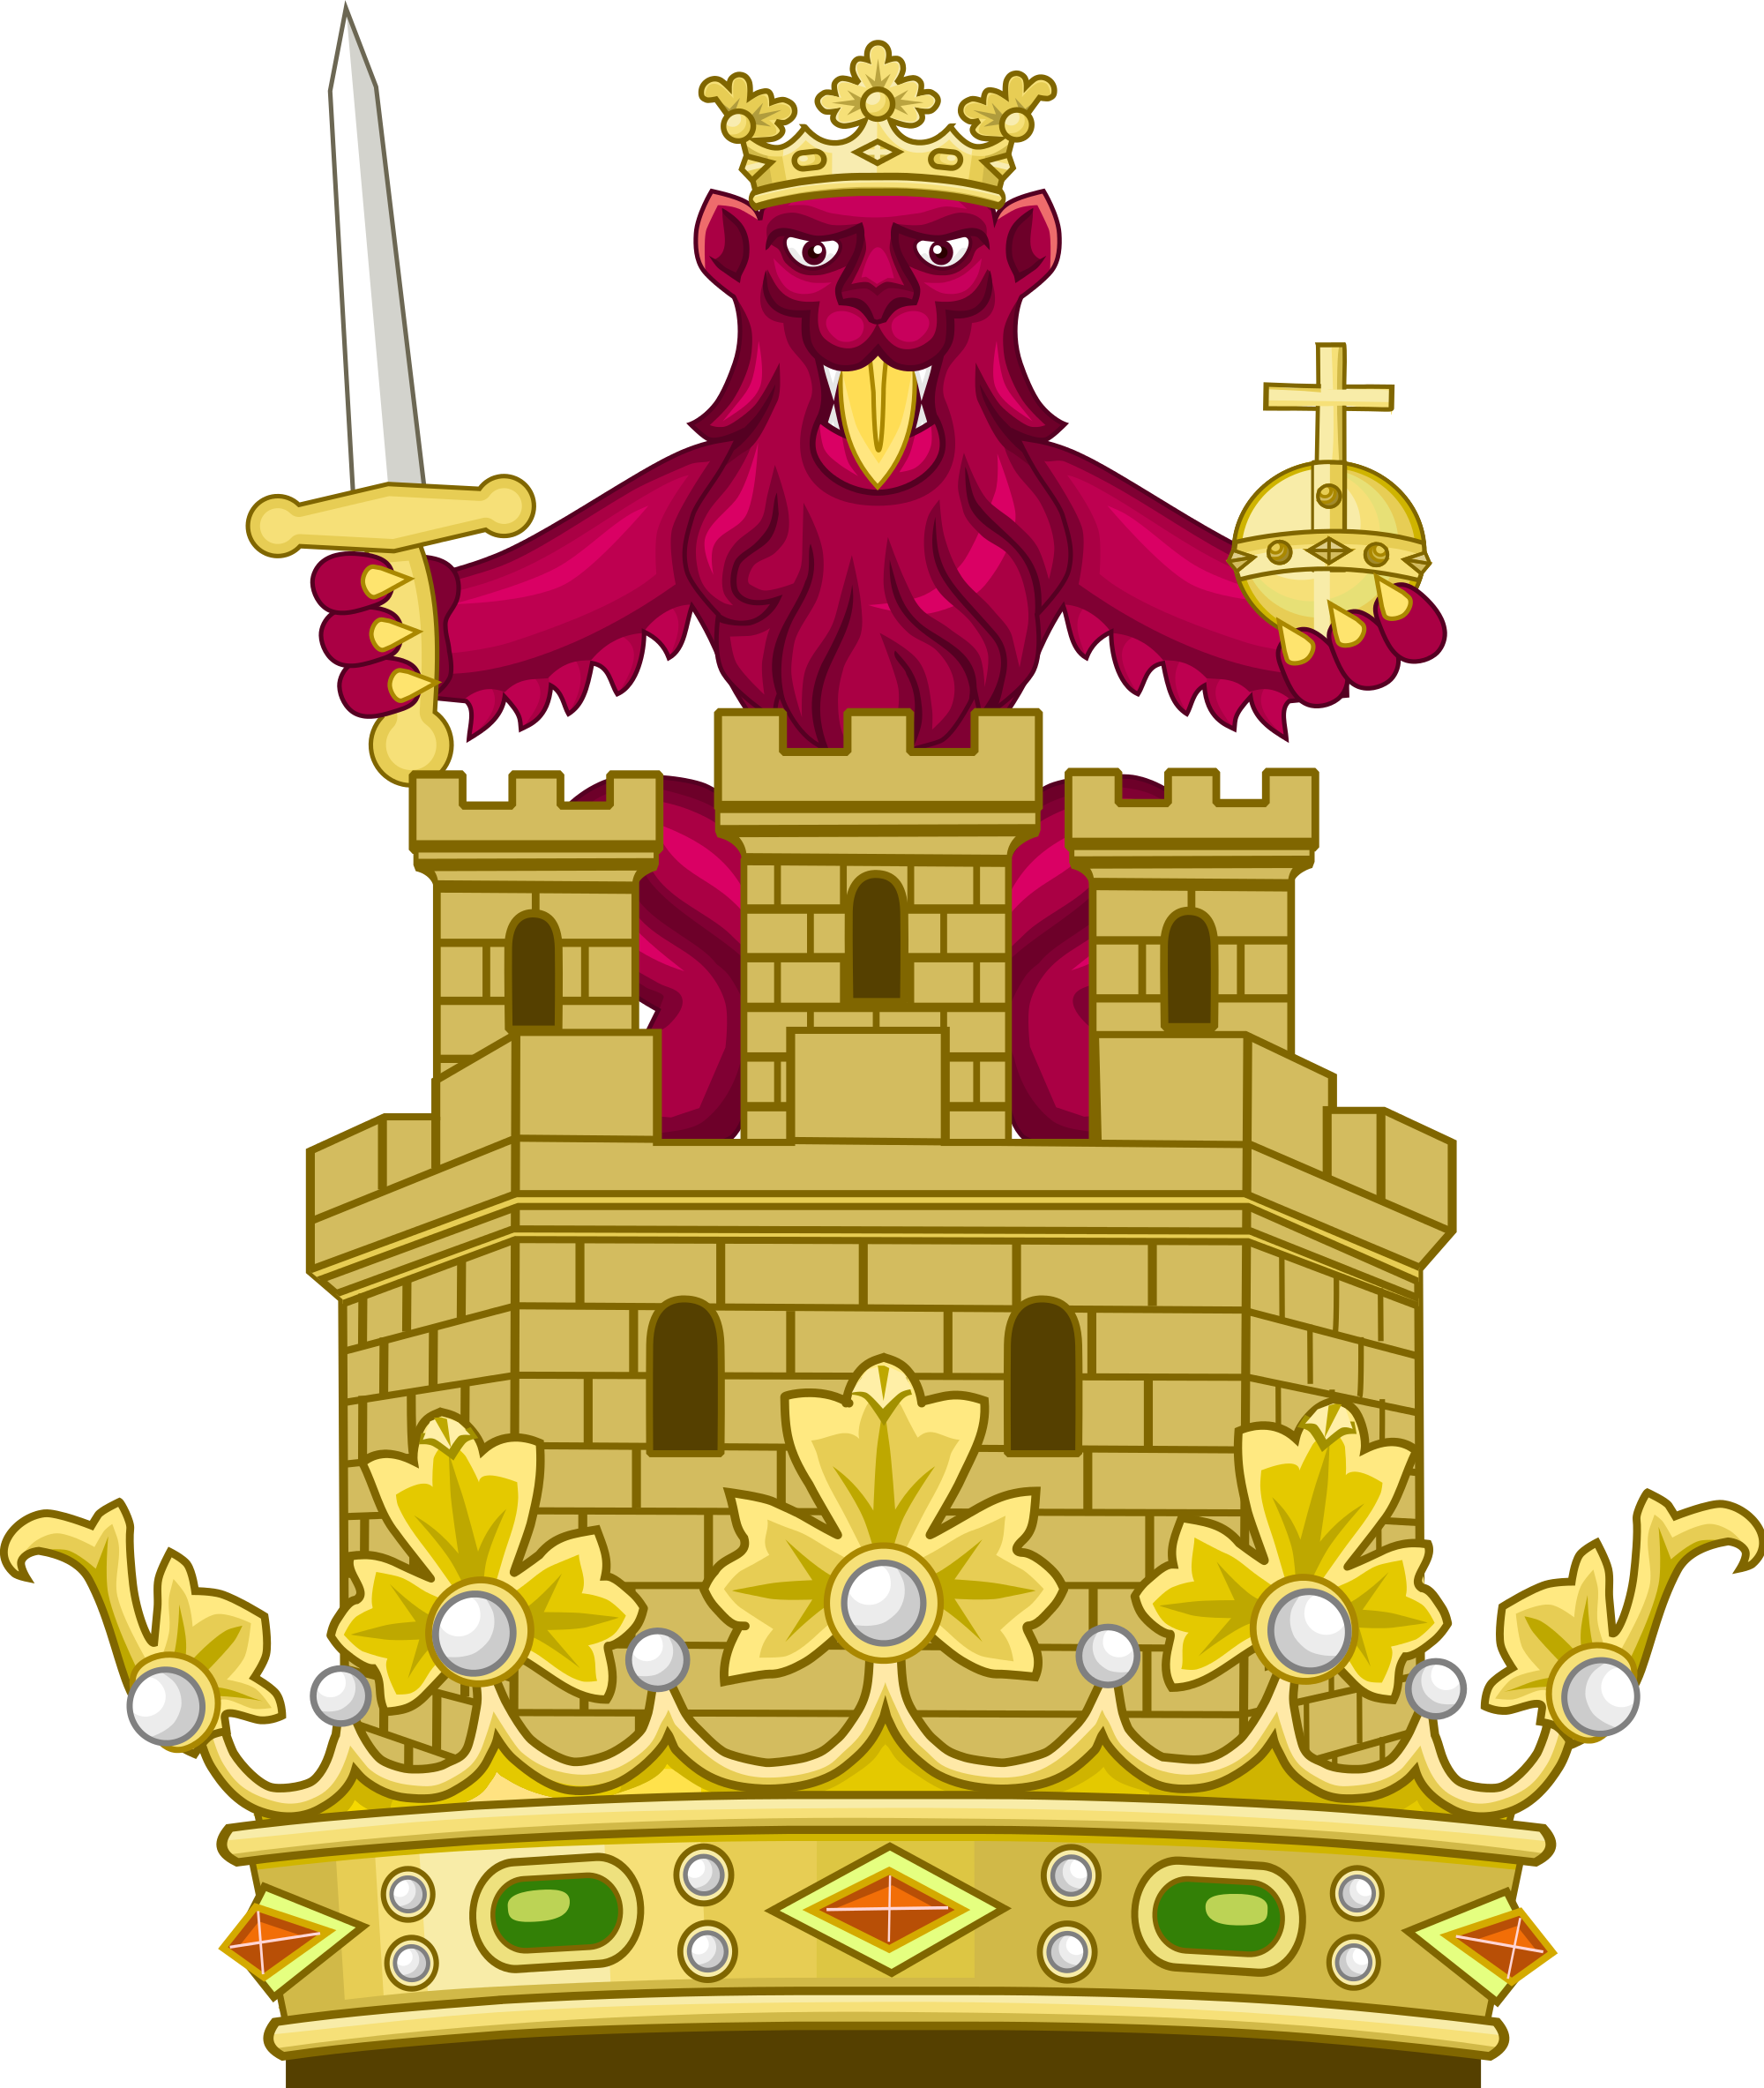 Crown crest clipart png graphic stock File:Royal Crest of the Crown of Castile.svg - Wikimedia Commons graphic stock